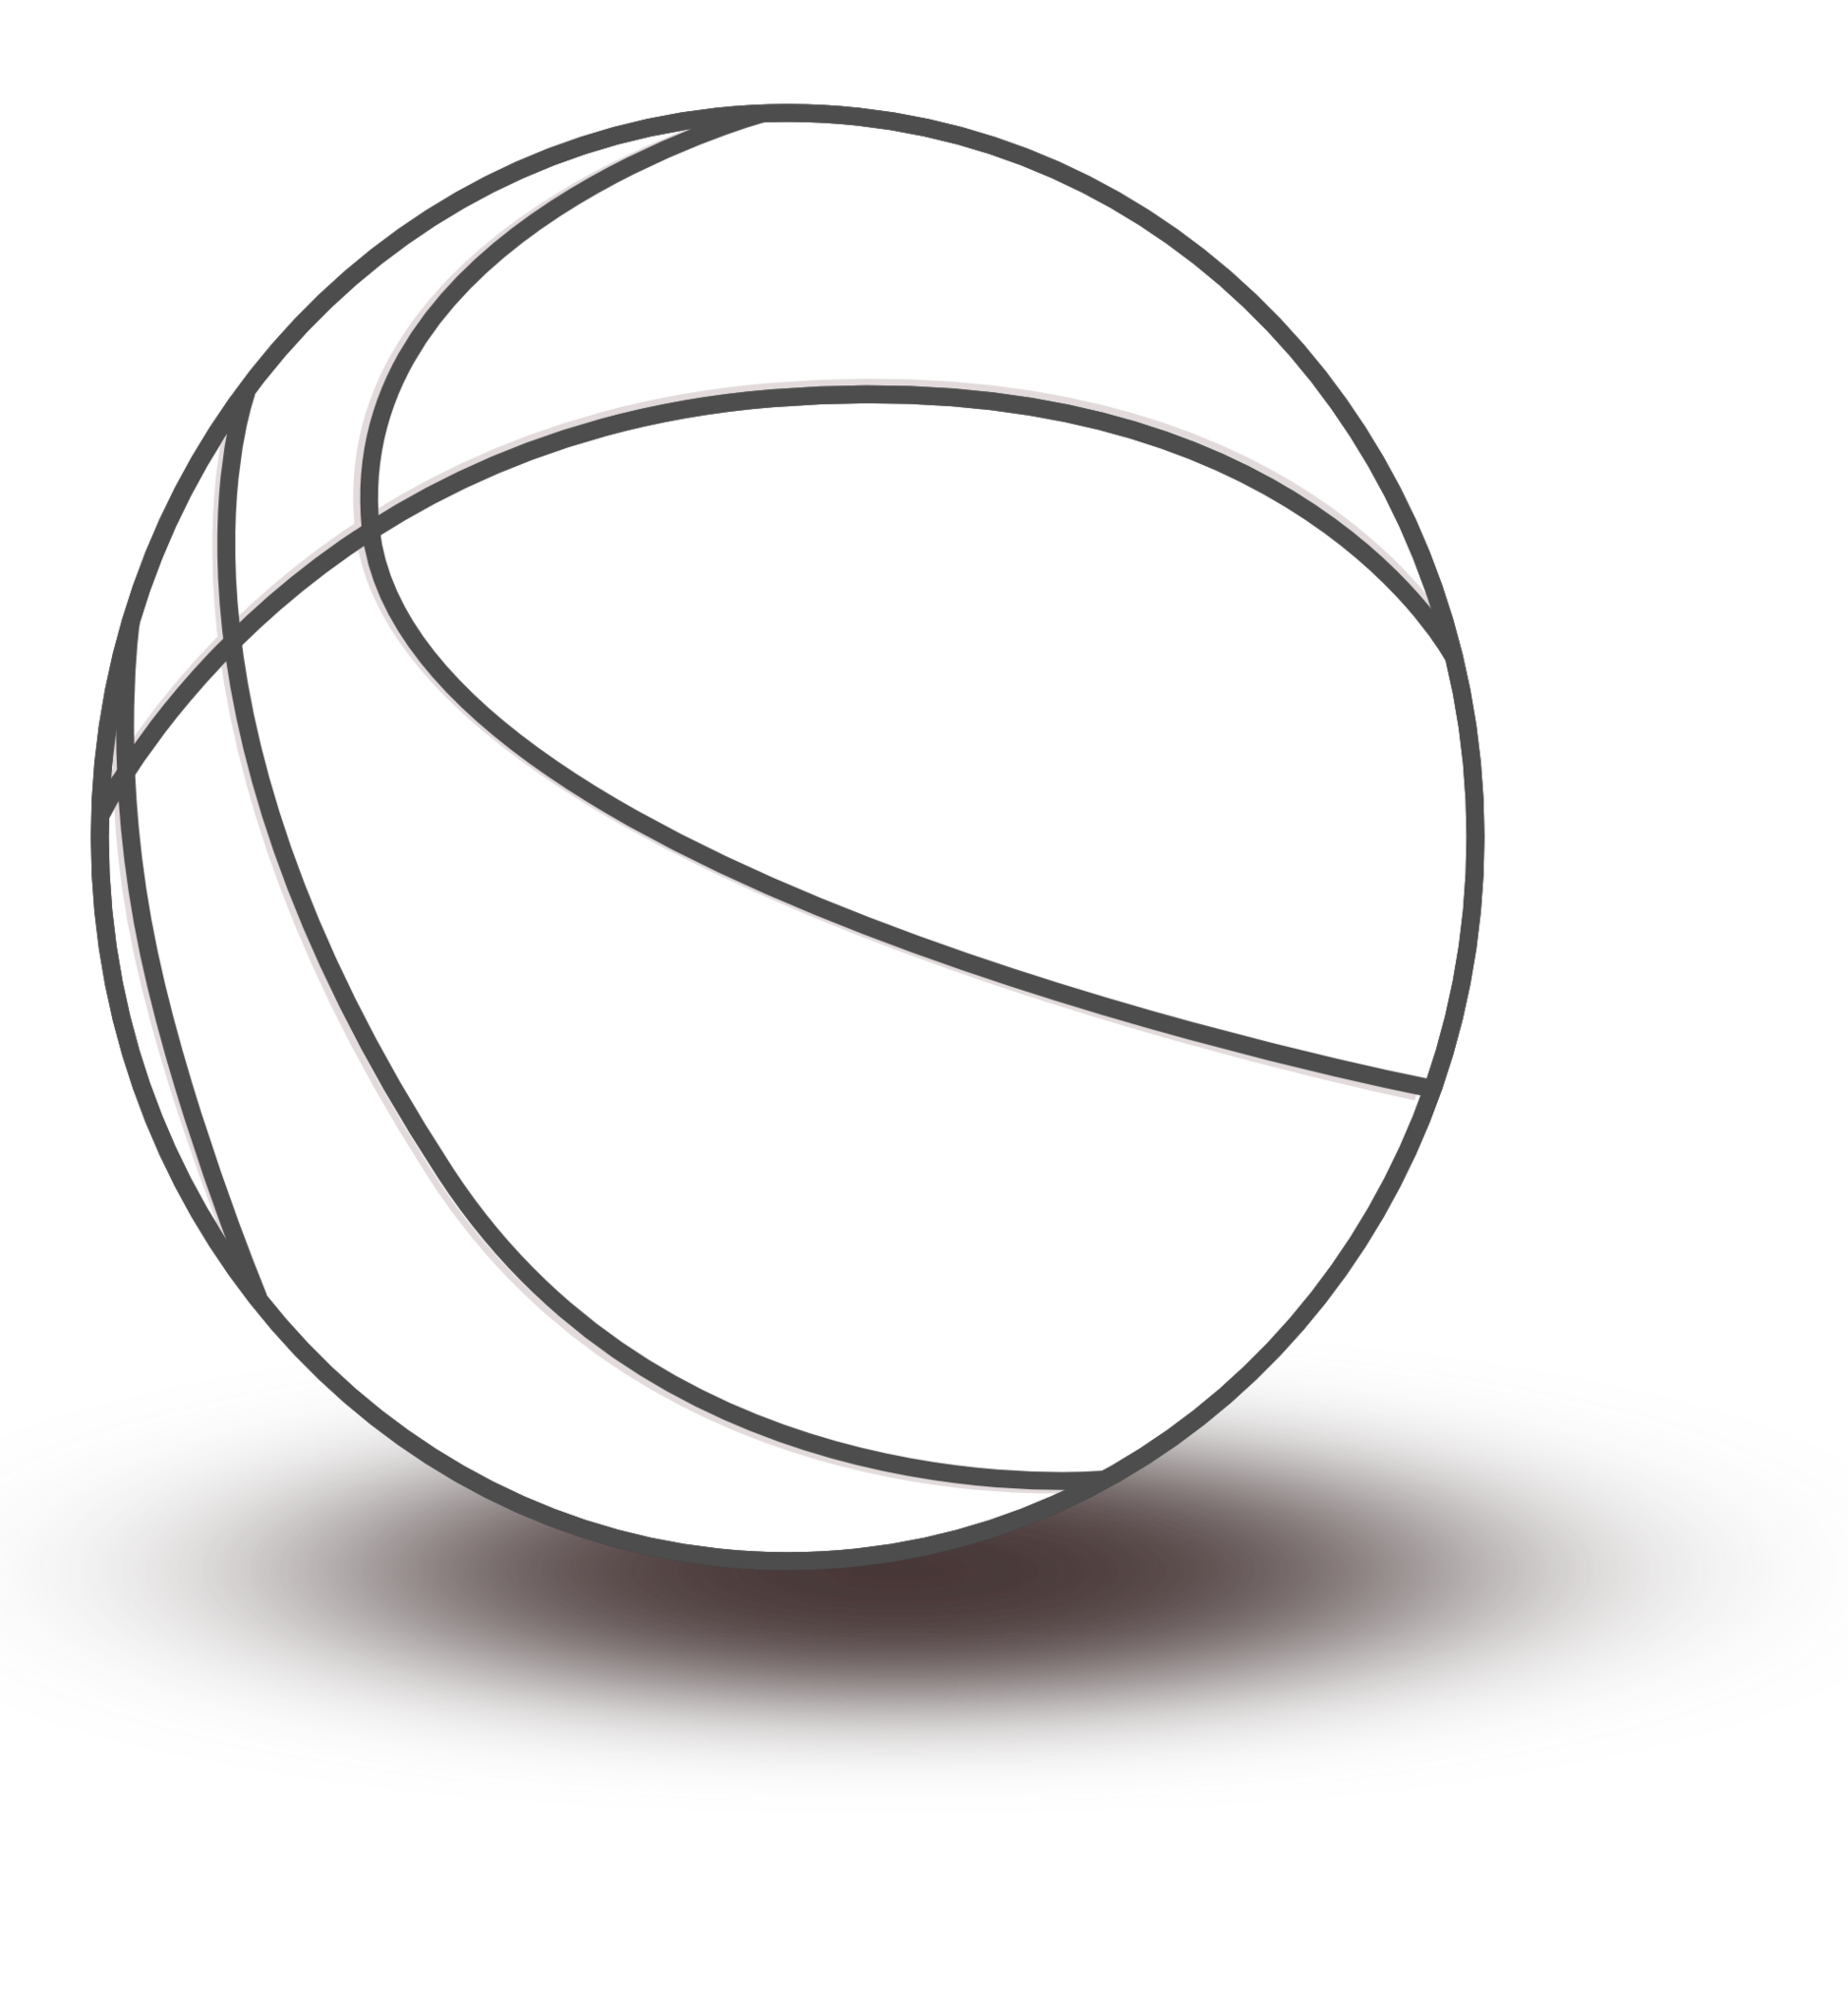 Sphere PNG Black And White Transparent Sphere Black And ...